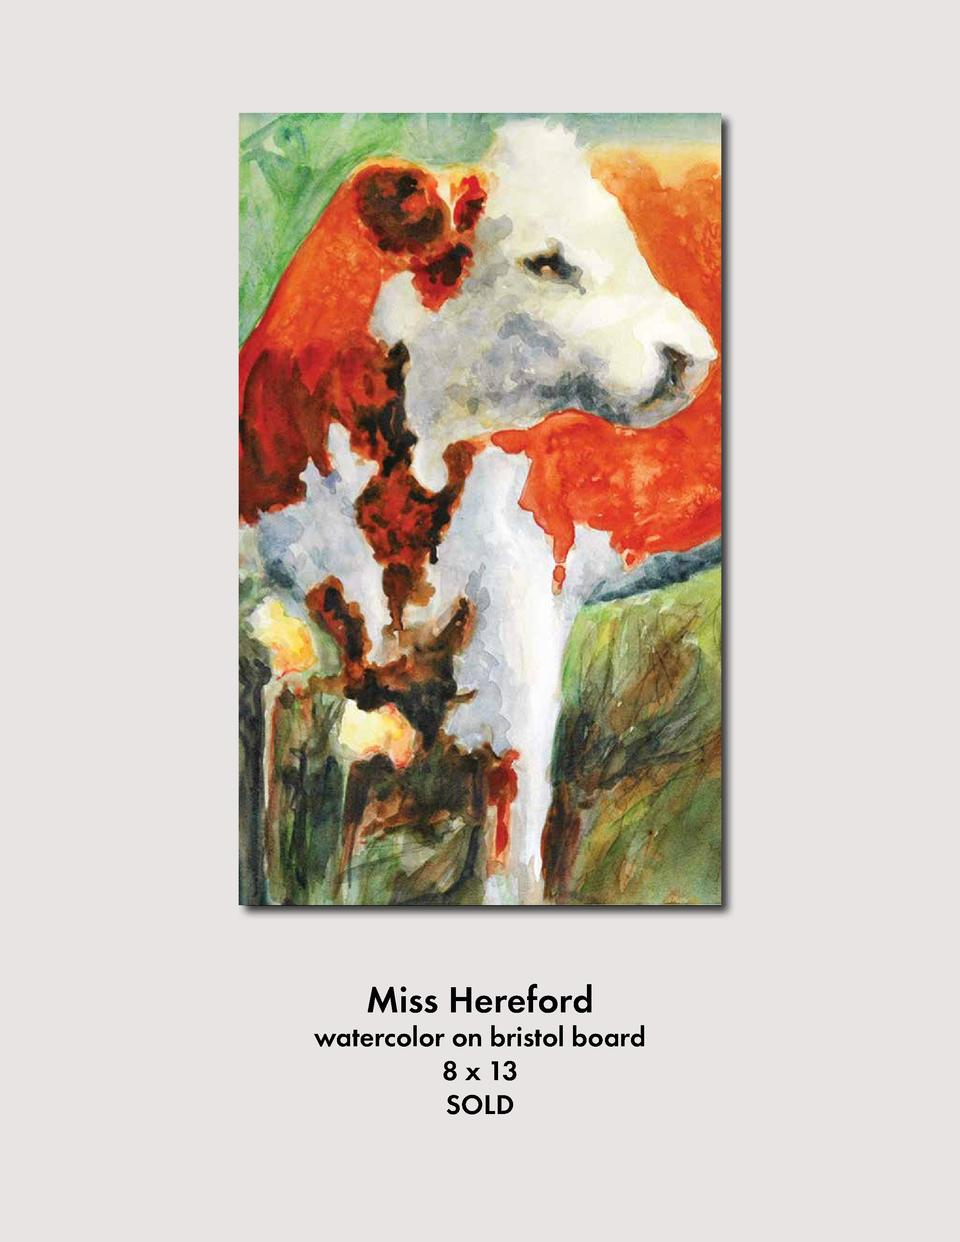 Miss Hereford  watercolor on bristol board 8 x 13 SOLD